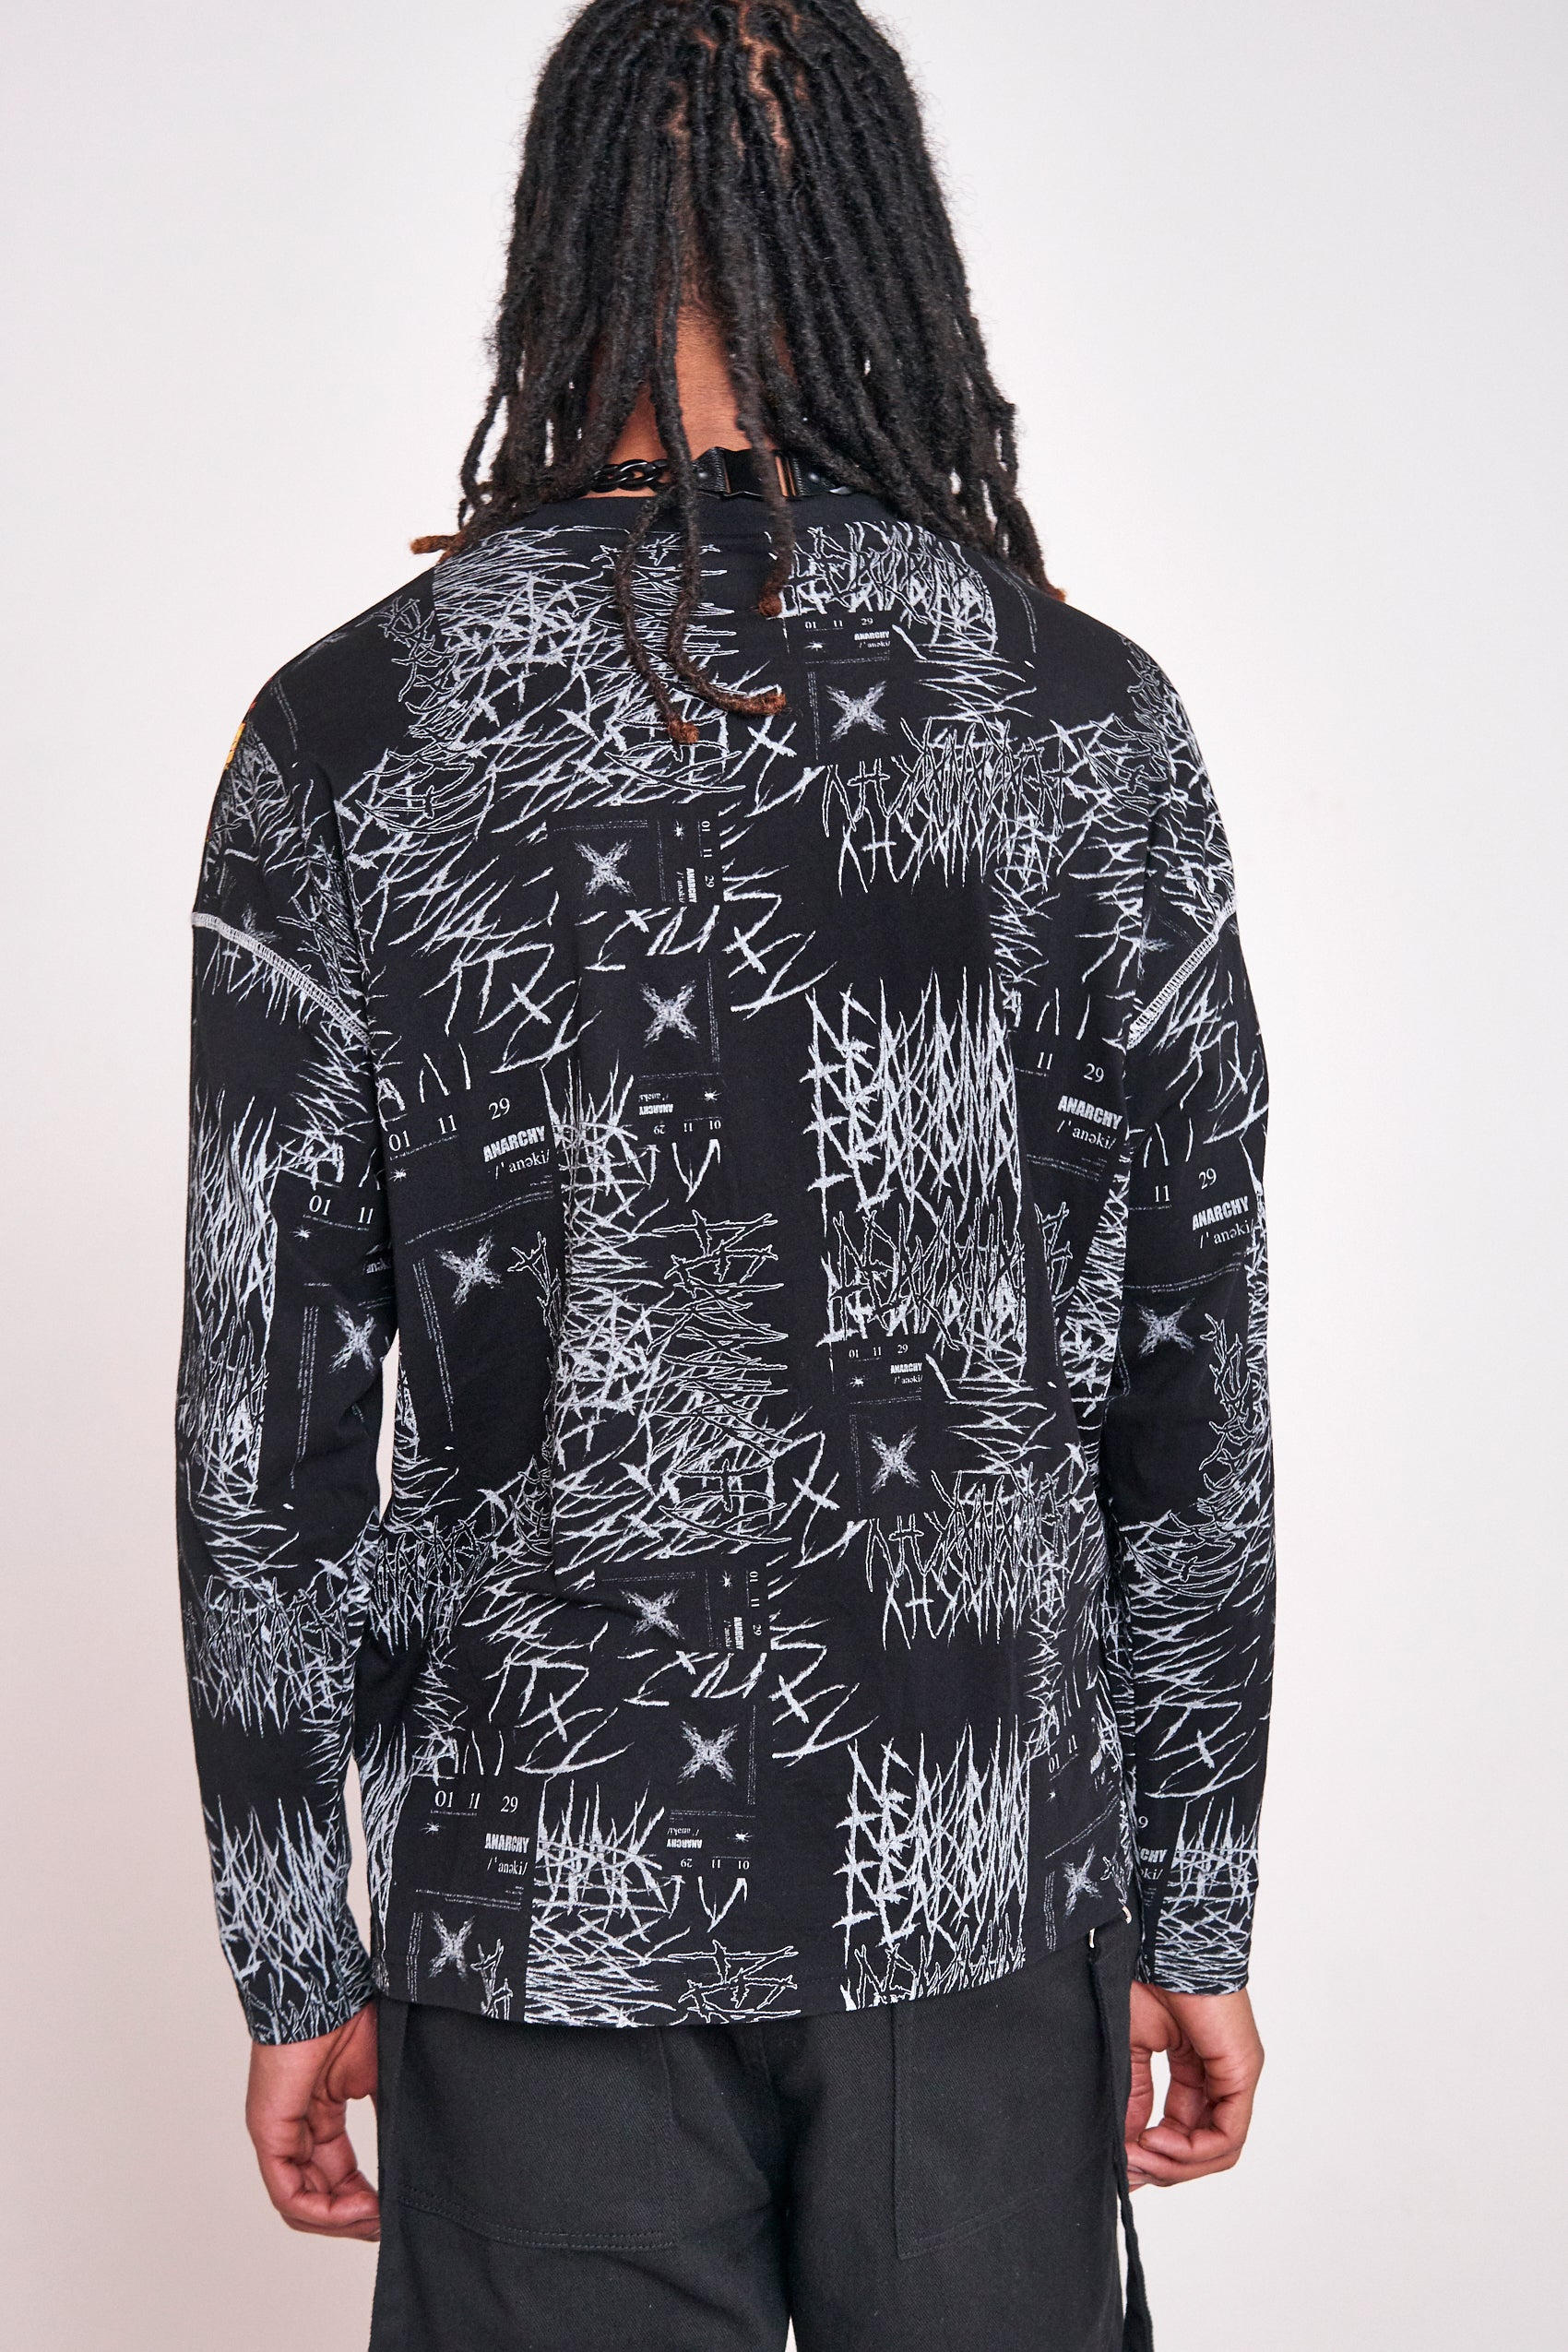 Anarchy Skull & Flame Print Long Sleeve T-shirt